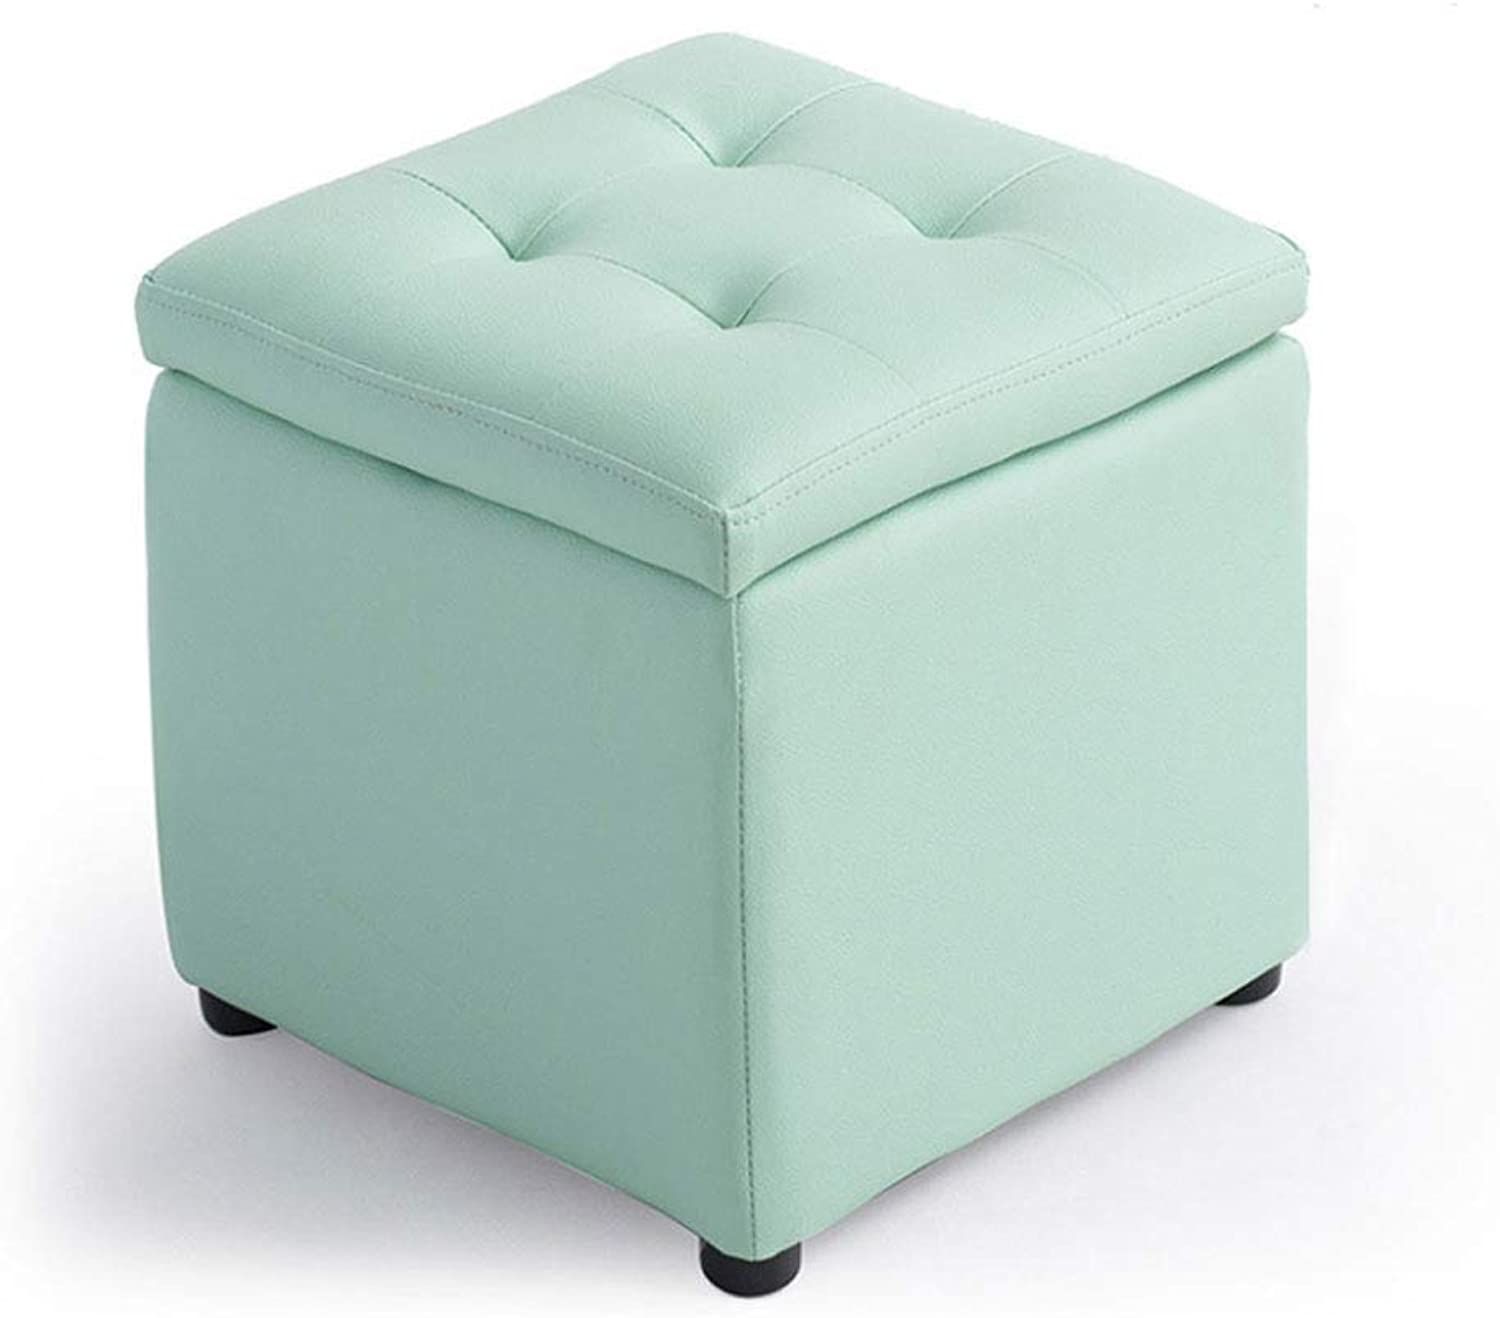 ZXW STOOLS- Multi-Functional Storage Stool, shoes Bench, Hallway Sofa Bench (color   Green, Size   34x34x36cm)